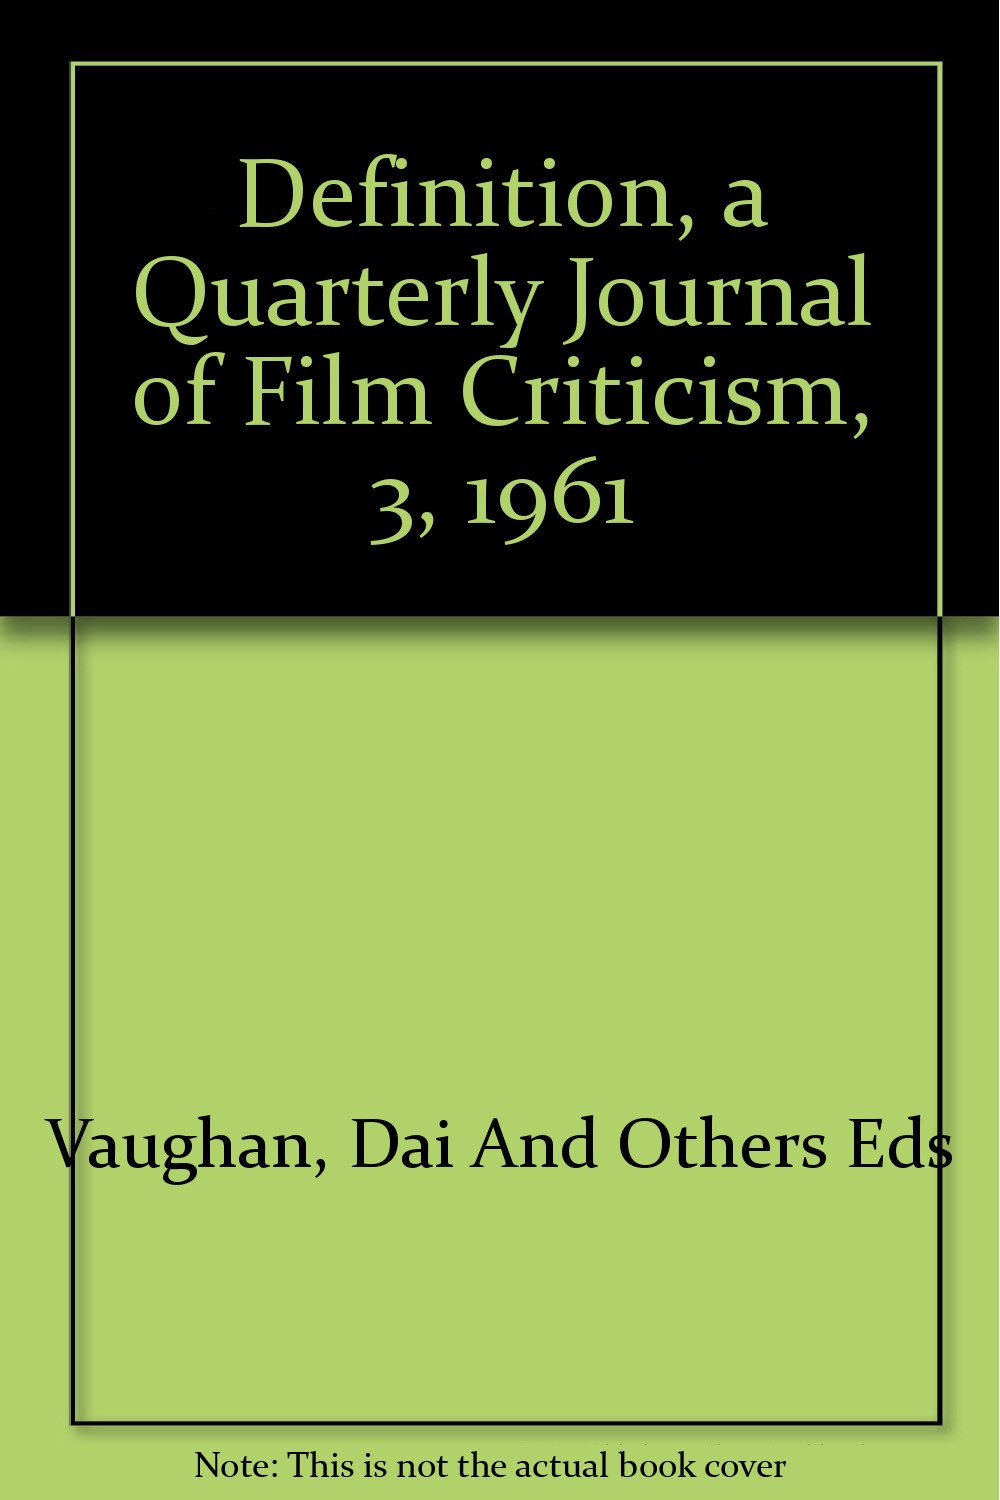 Definition A Quarterly Journal Of Film Criticism 3 1961 Vaughan Dai And Others Eds Amazon Com Books